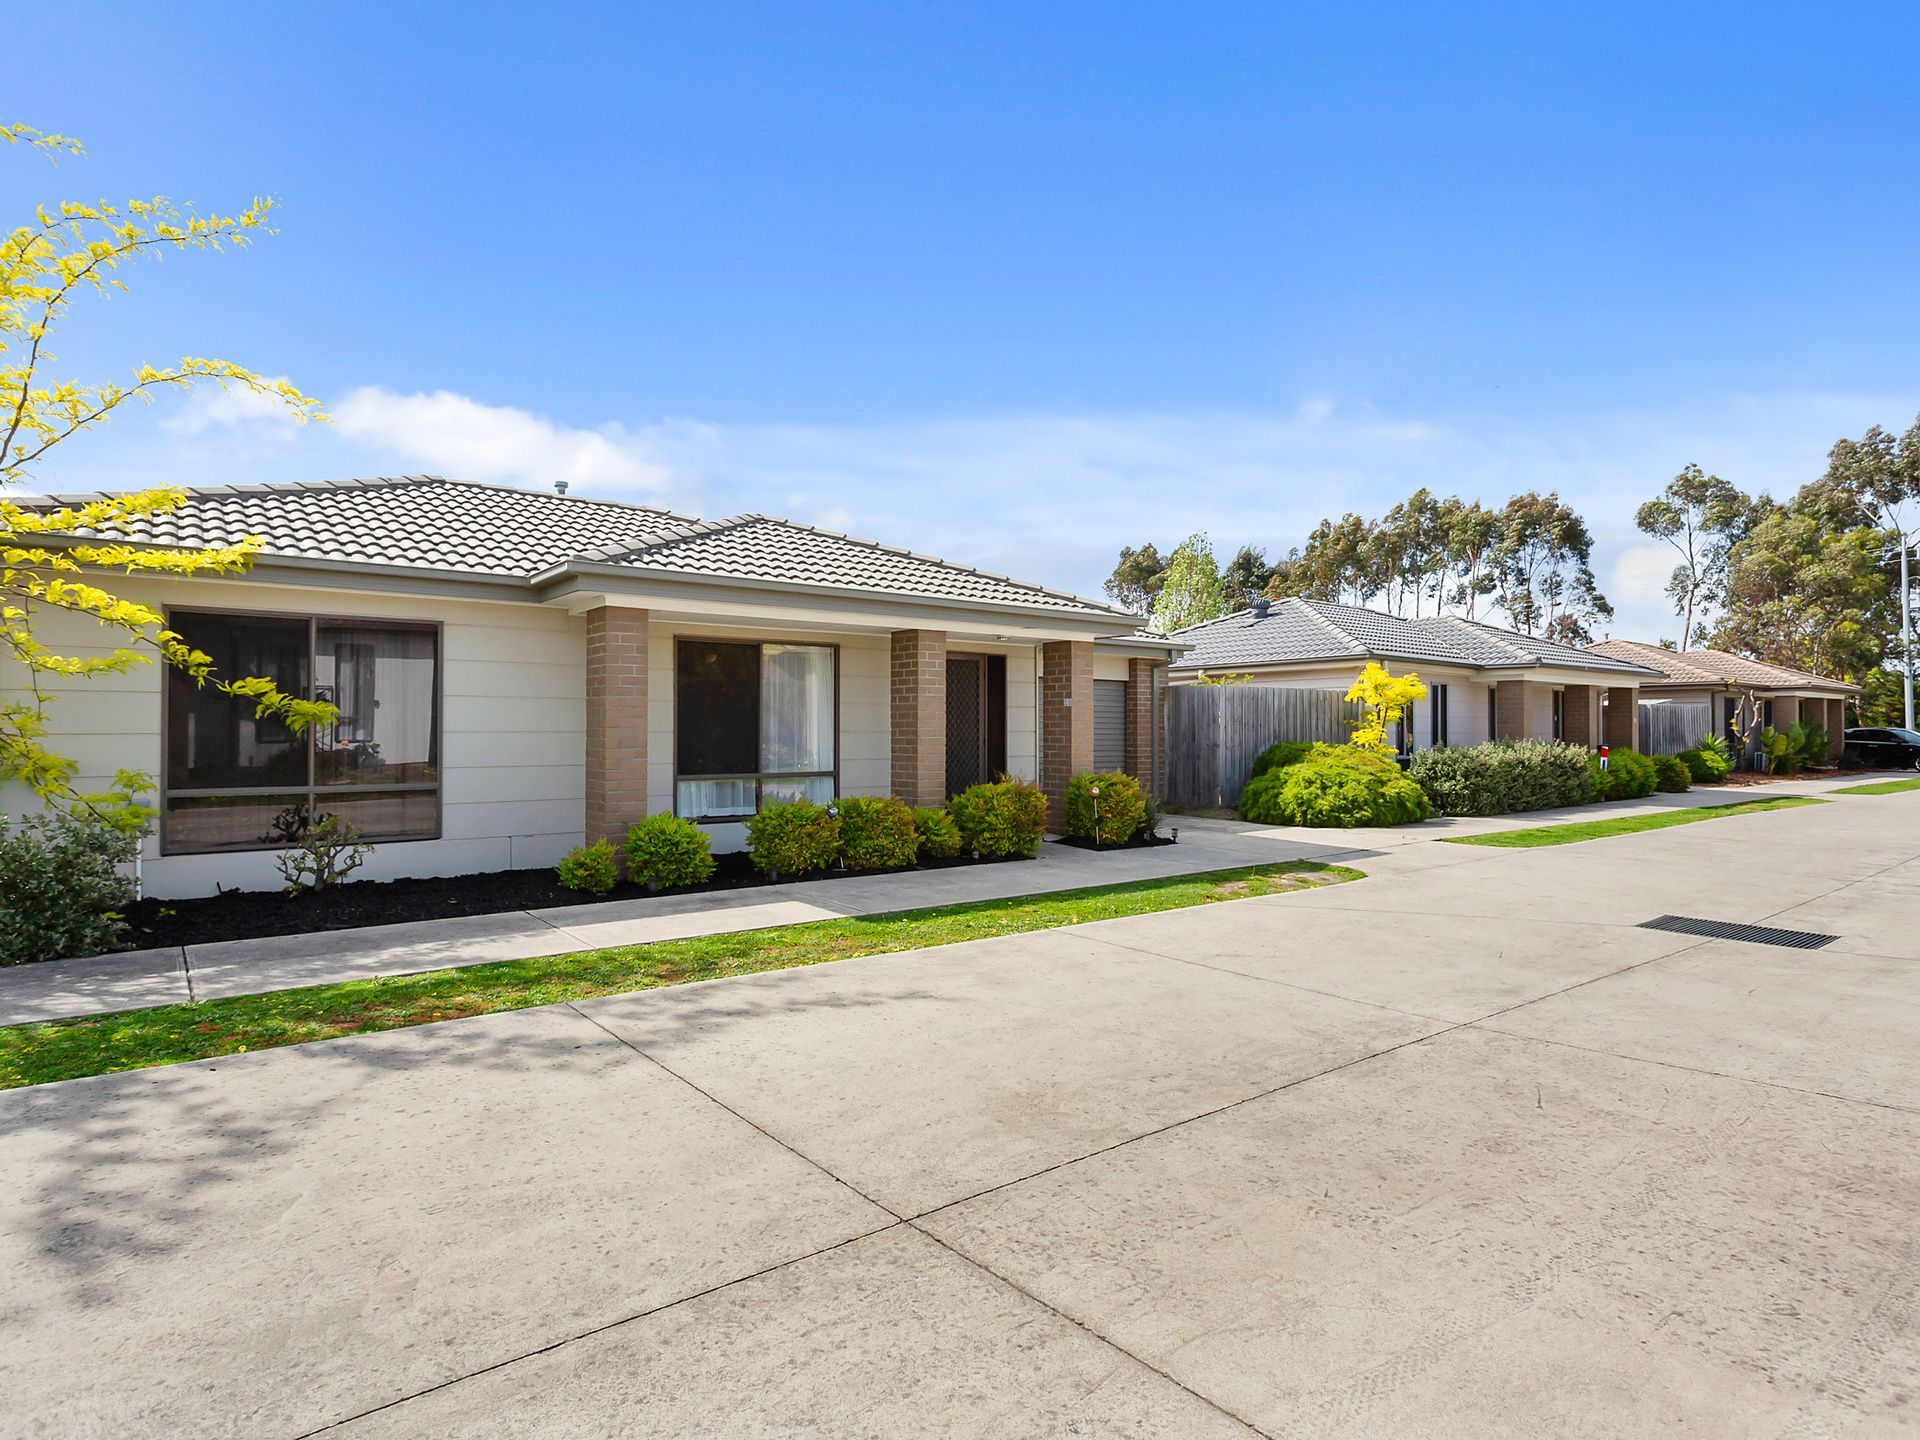 10/3 Elisa Place, HASTINGS, VIC, 3915 - Image